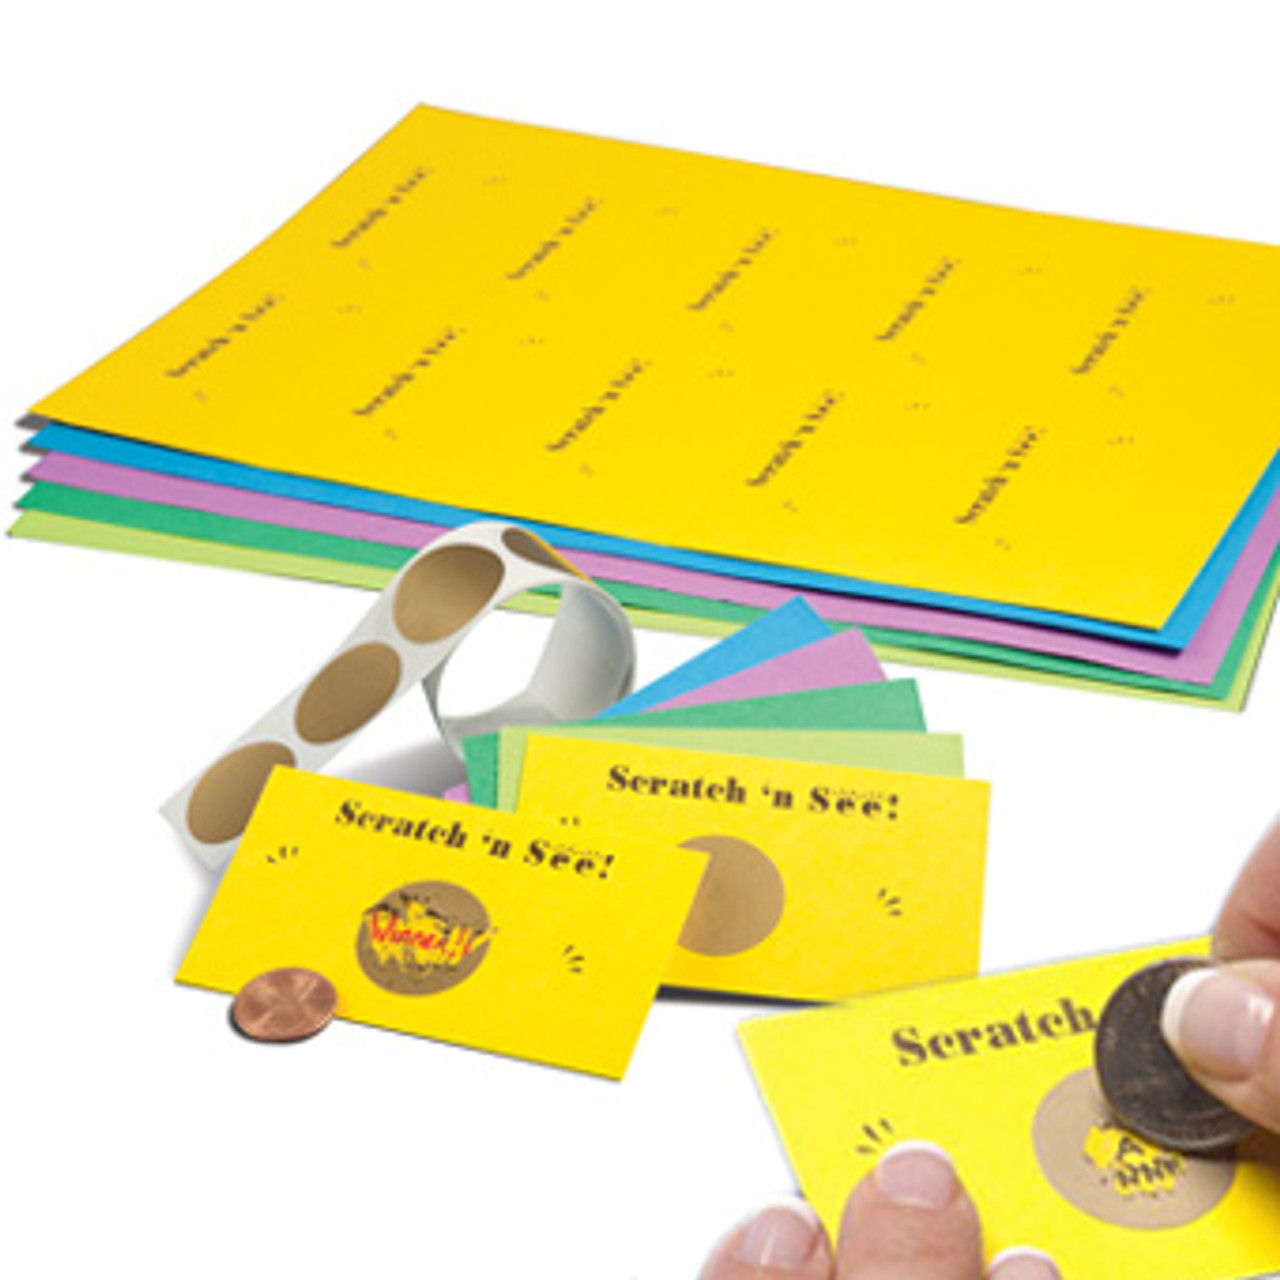 Scratch 'n See -- Cards & Stickers (100 sets)